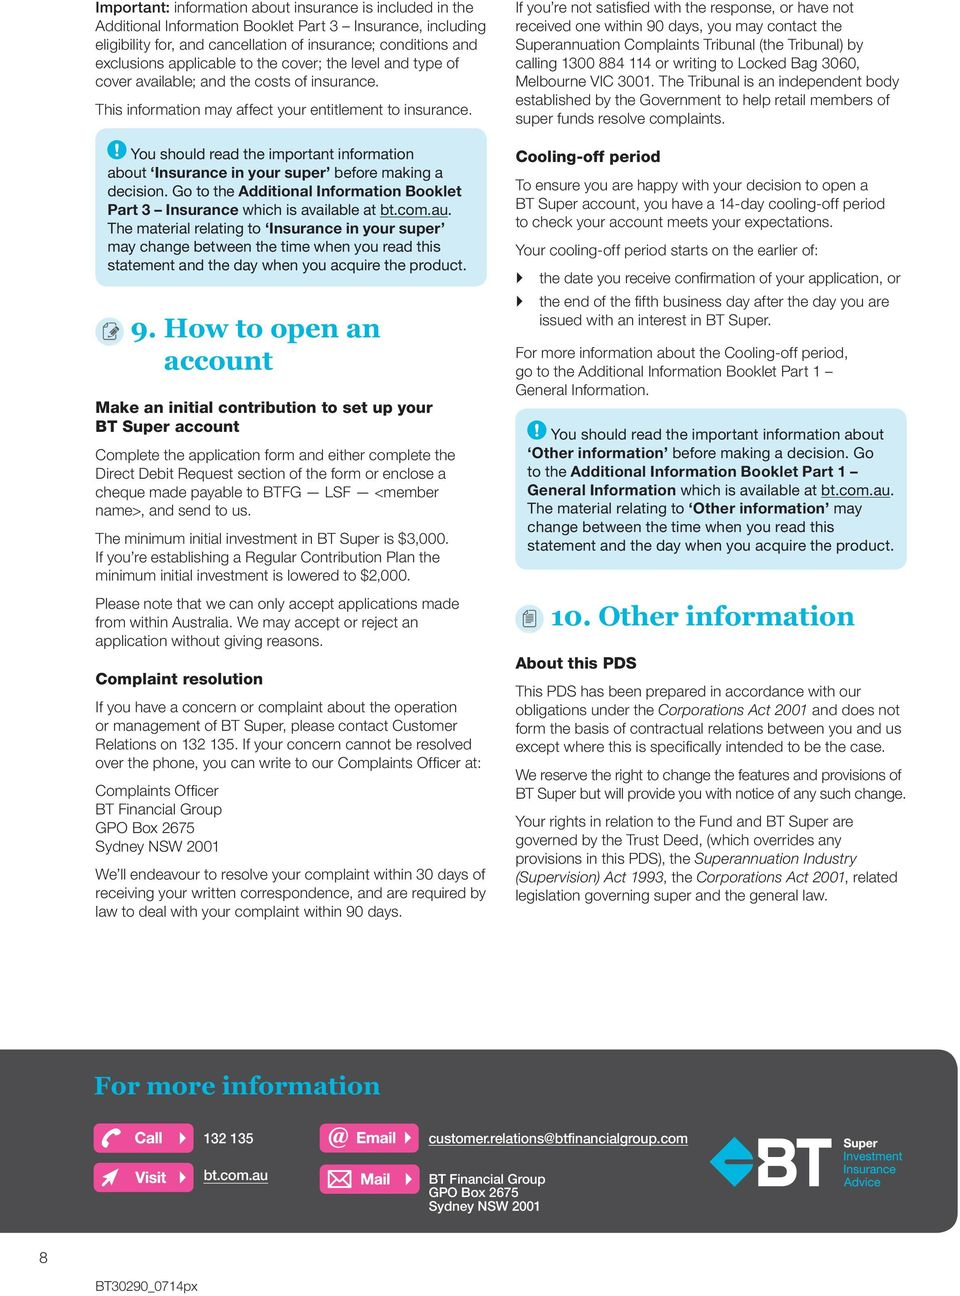 You should read the important information about Insurance in your super before making a decision. Go to the Additional Information Booklet Part 3 Insurance which is available at bt.com.au.